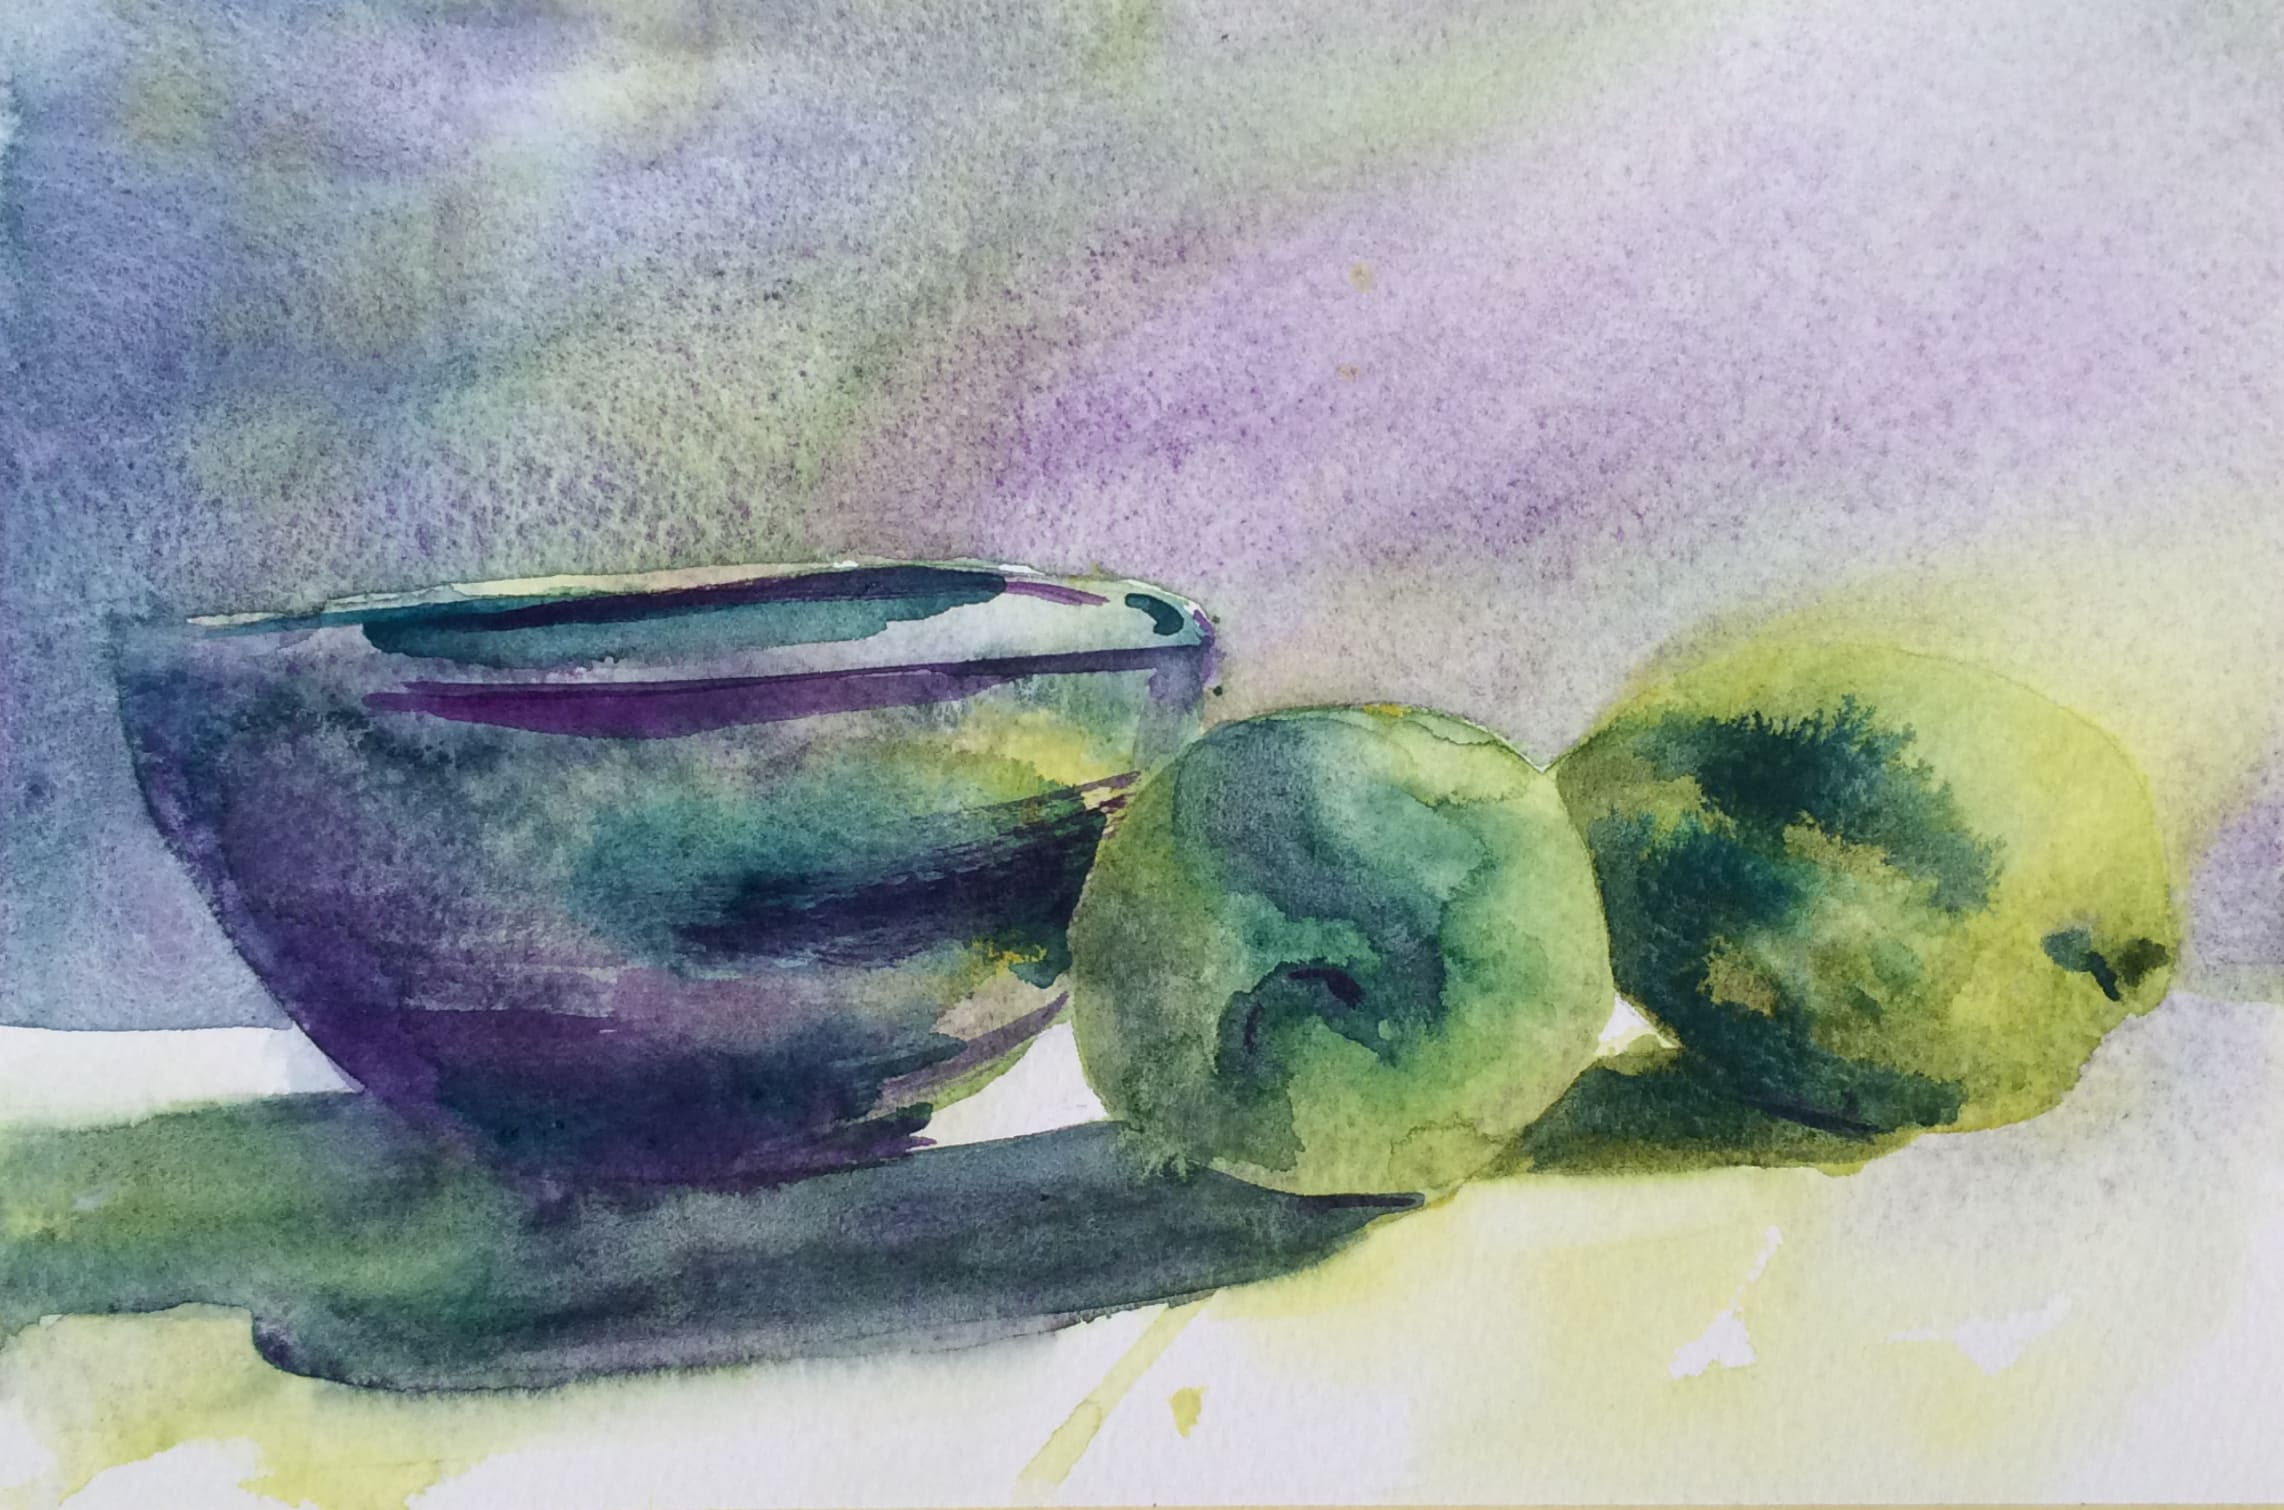 Go (a Little) Wild!—How to Loosen Up (Just a Bit) in Watercolor